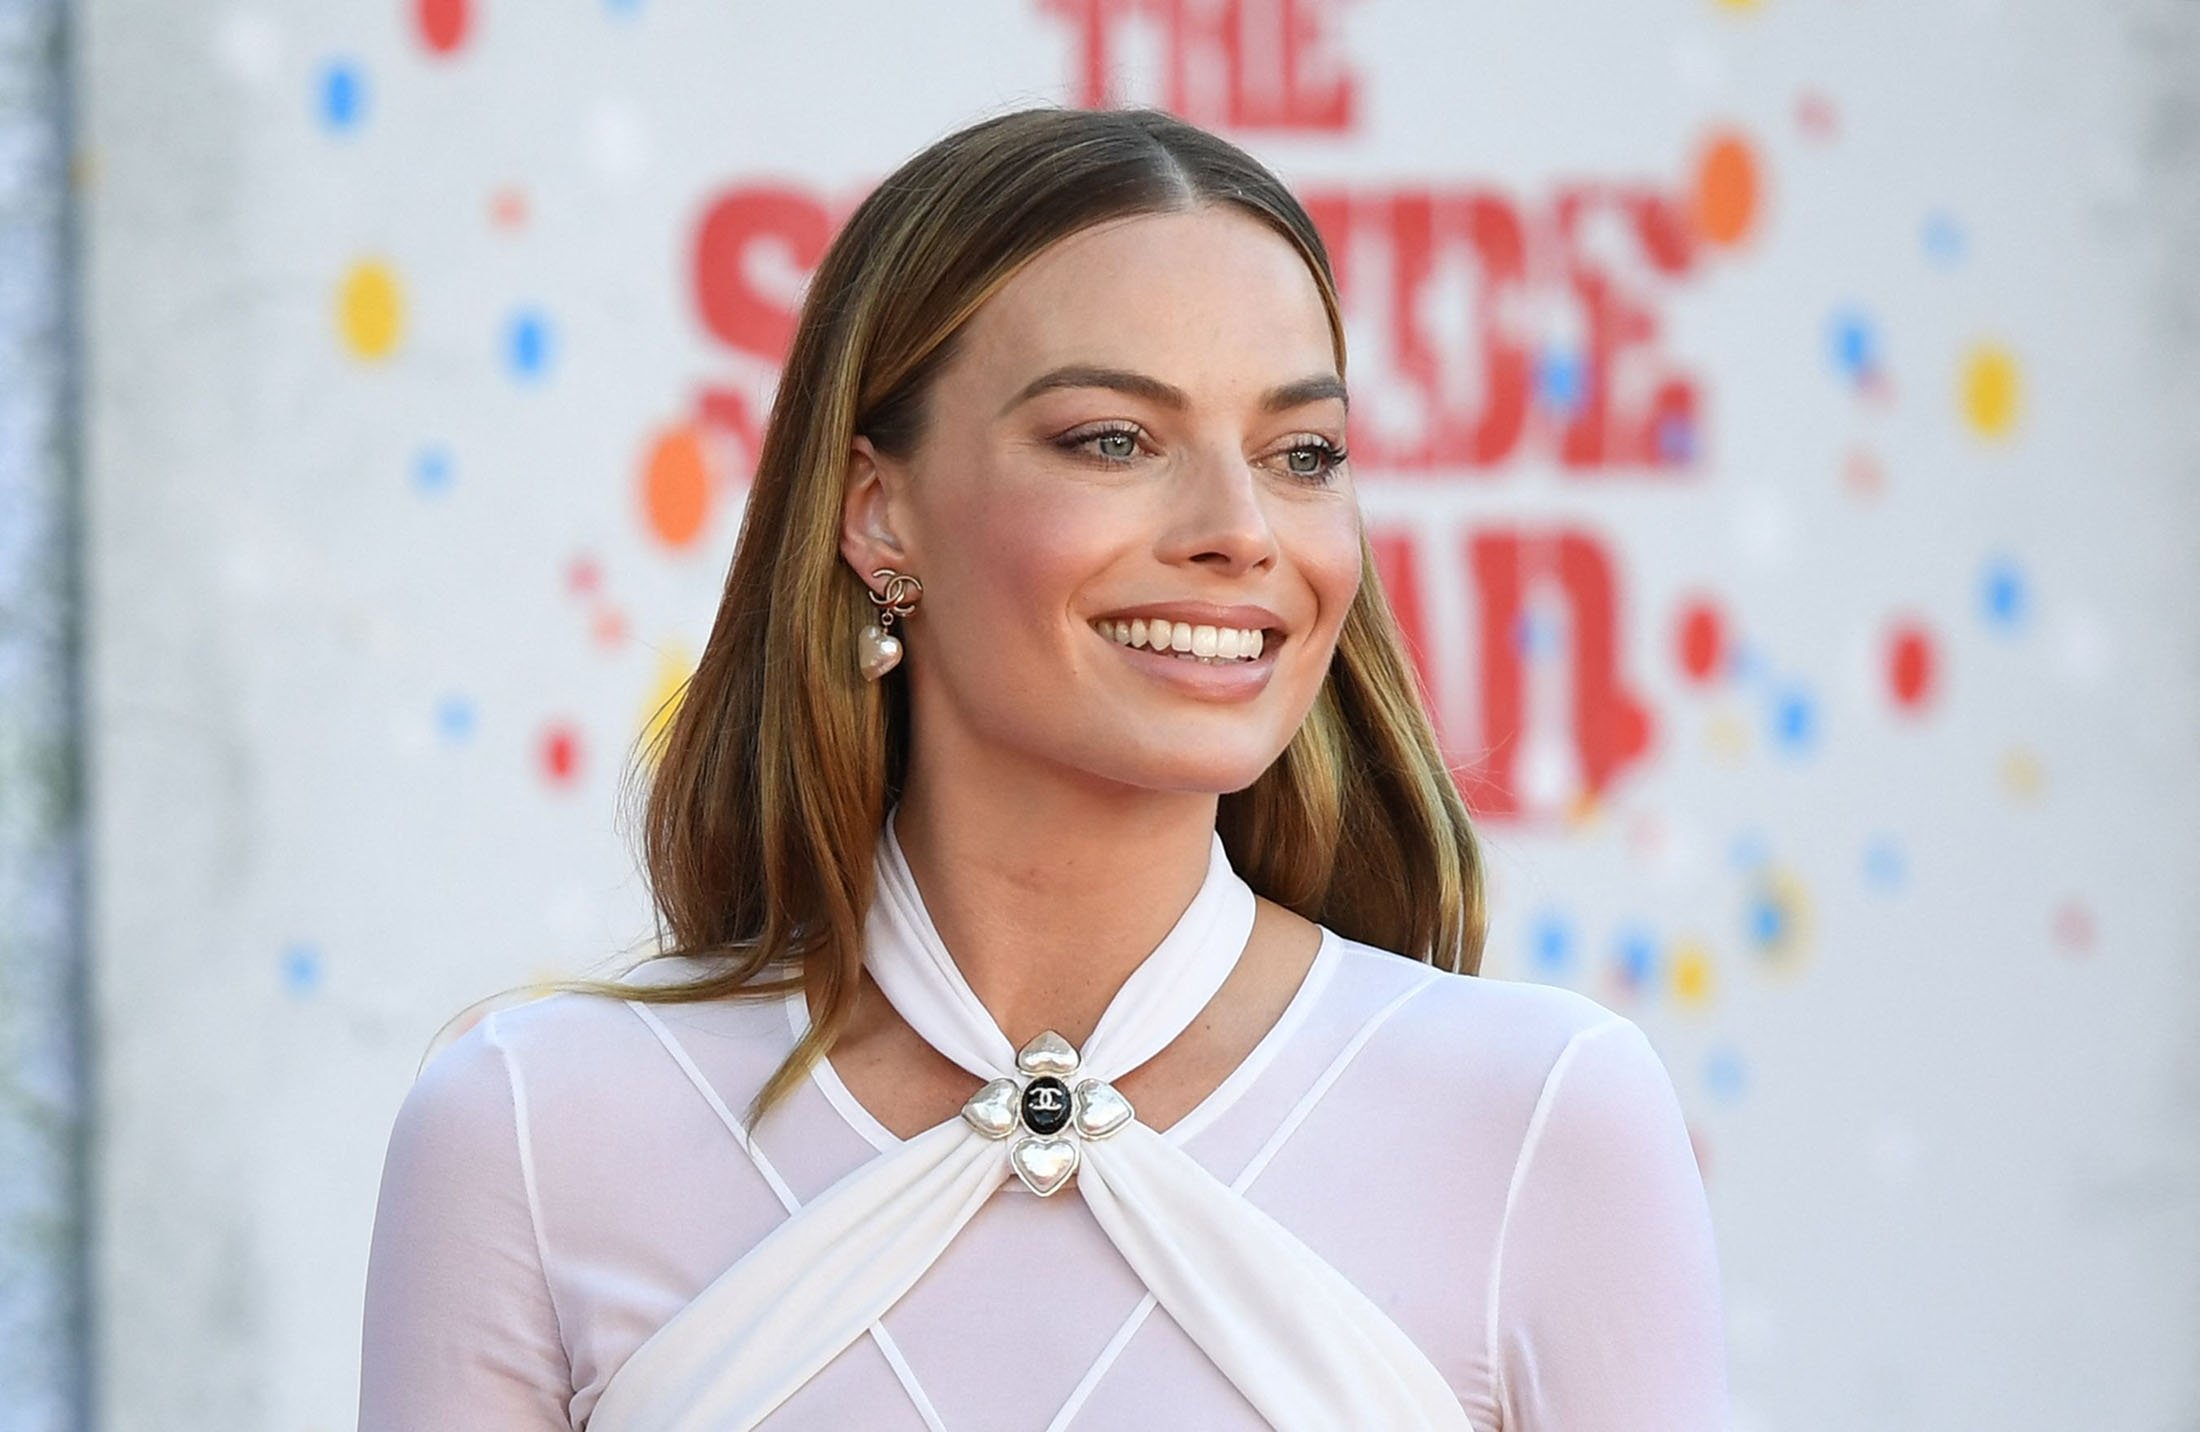 Australian actress Margot Robbie arrives for the premiere of 'The Suicide Squad' at Regency Village Theatre in Los Angeles, California, U.S., Aug. 2, 2021. (AFP Photo)